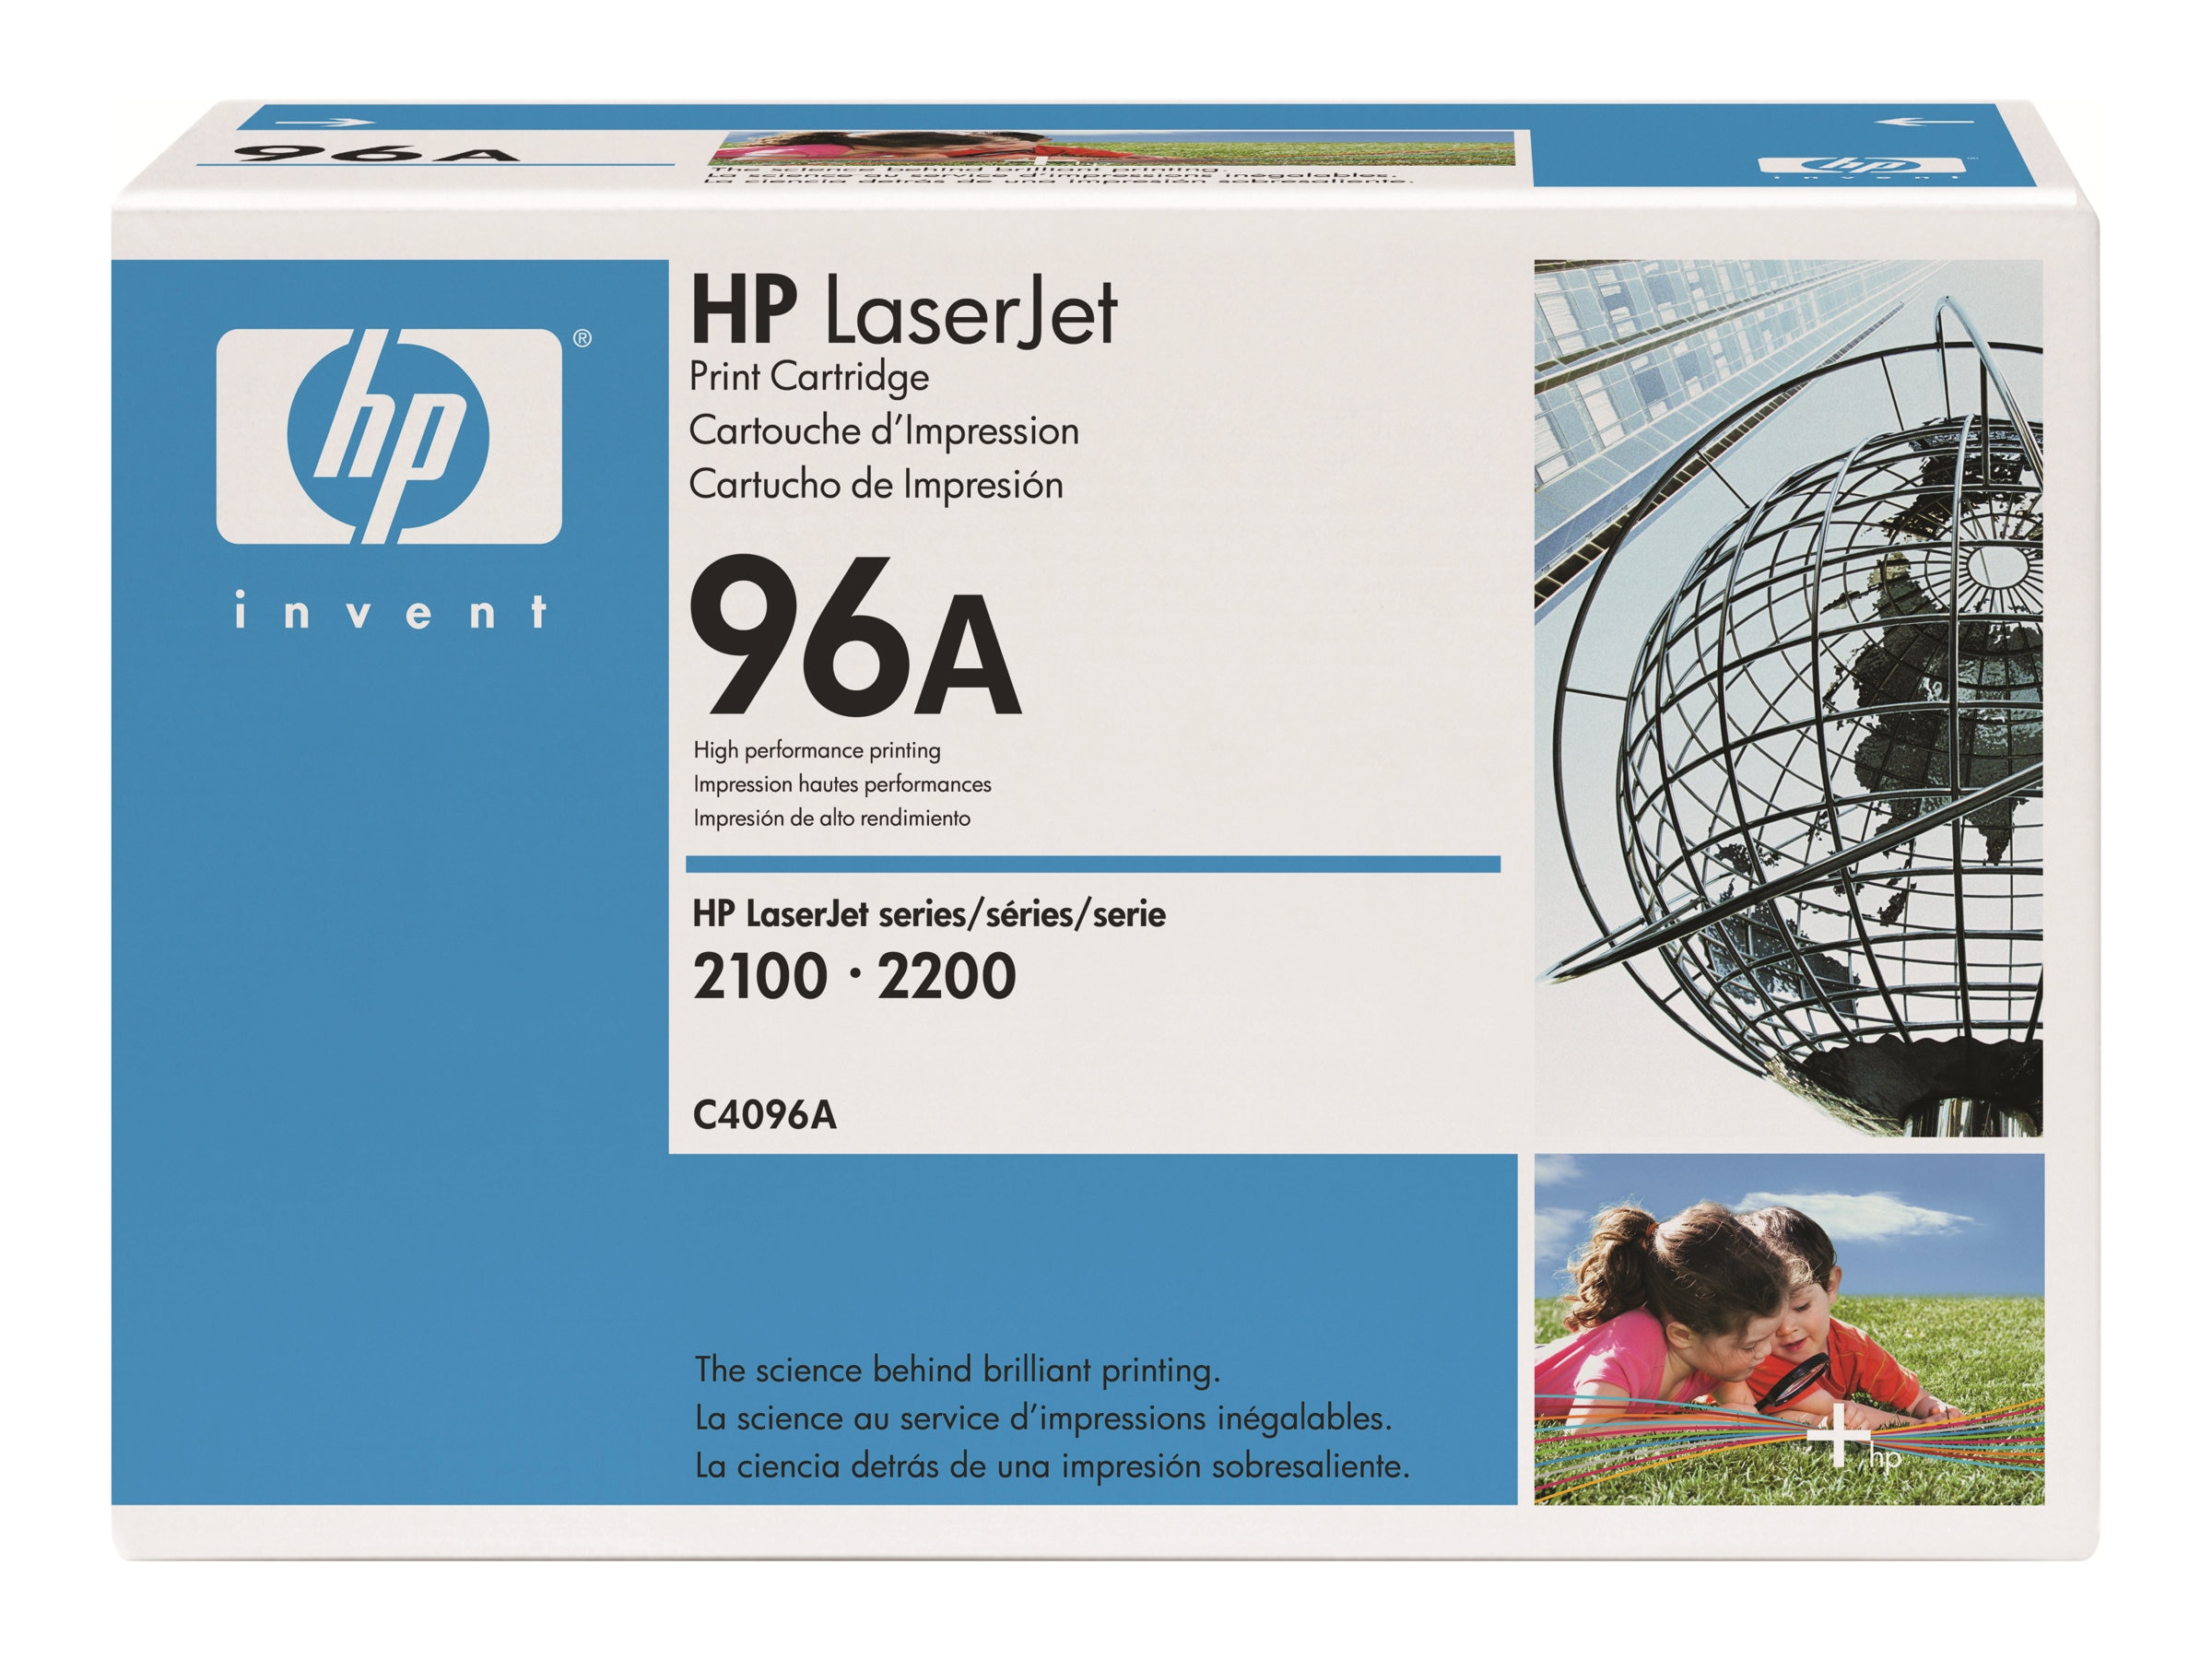 HP 96A (C4096A) Black Original LaserJet Toner Cartridge for HP LaserJet 2100 & 2200 Printers